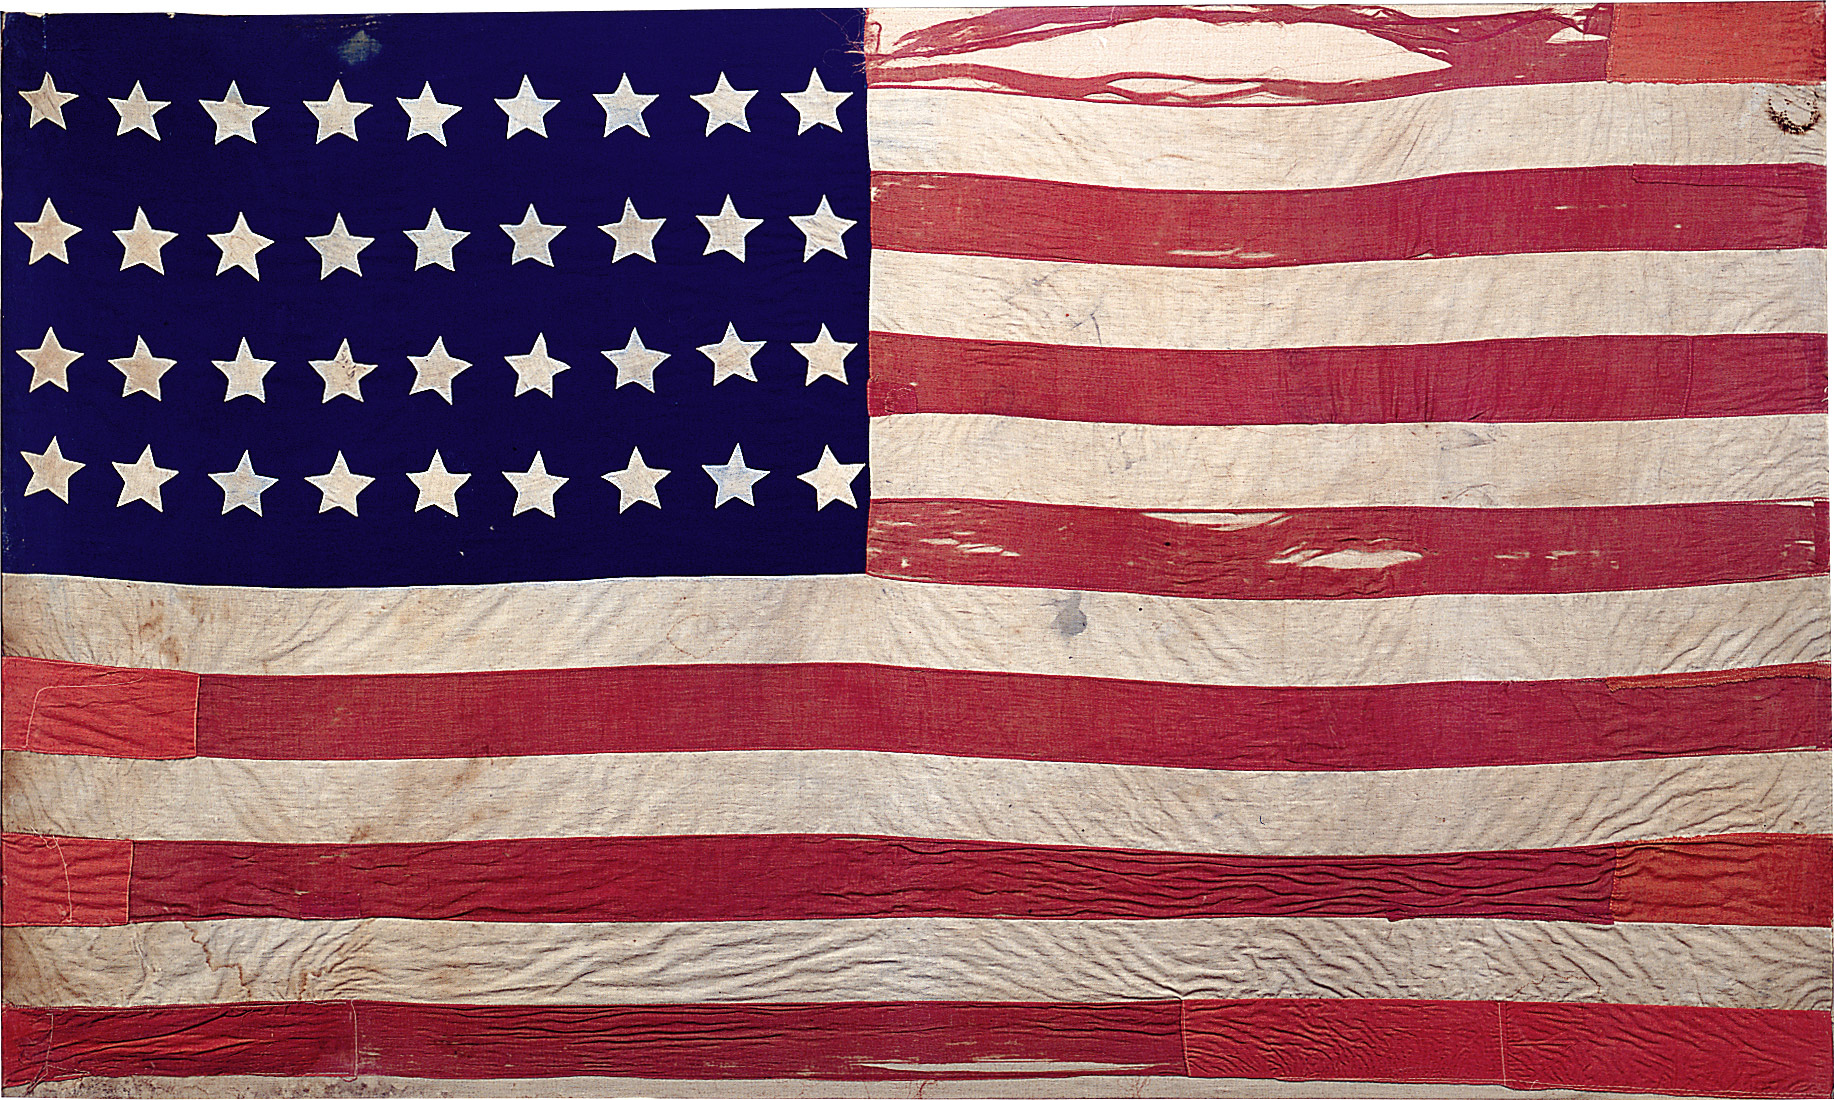 The Hinrichs family heirloom flag created by Ida Peppercorn in 1865.